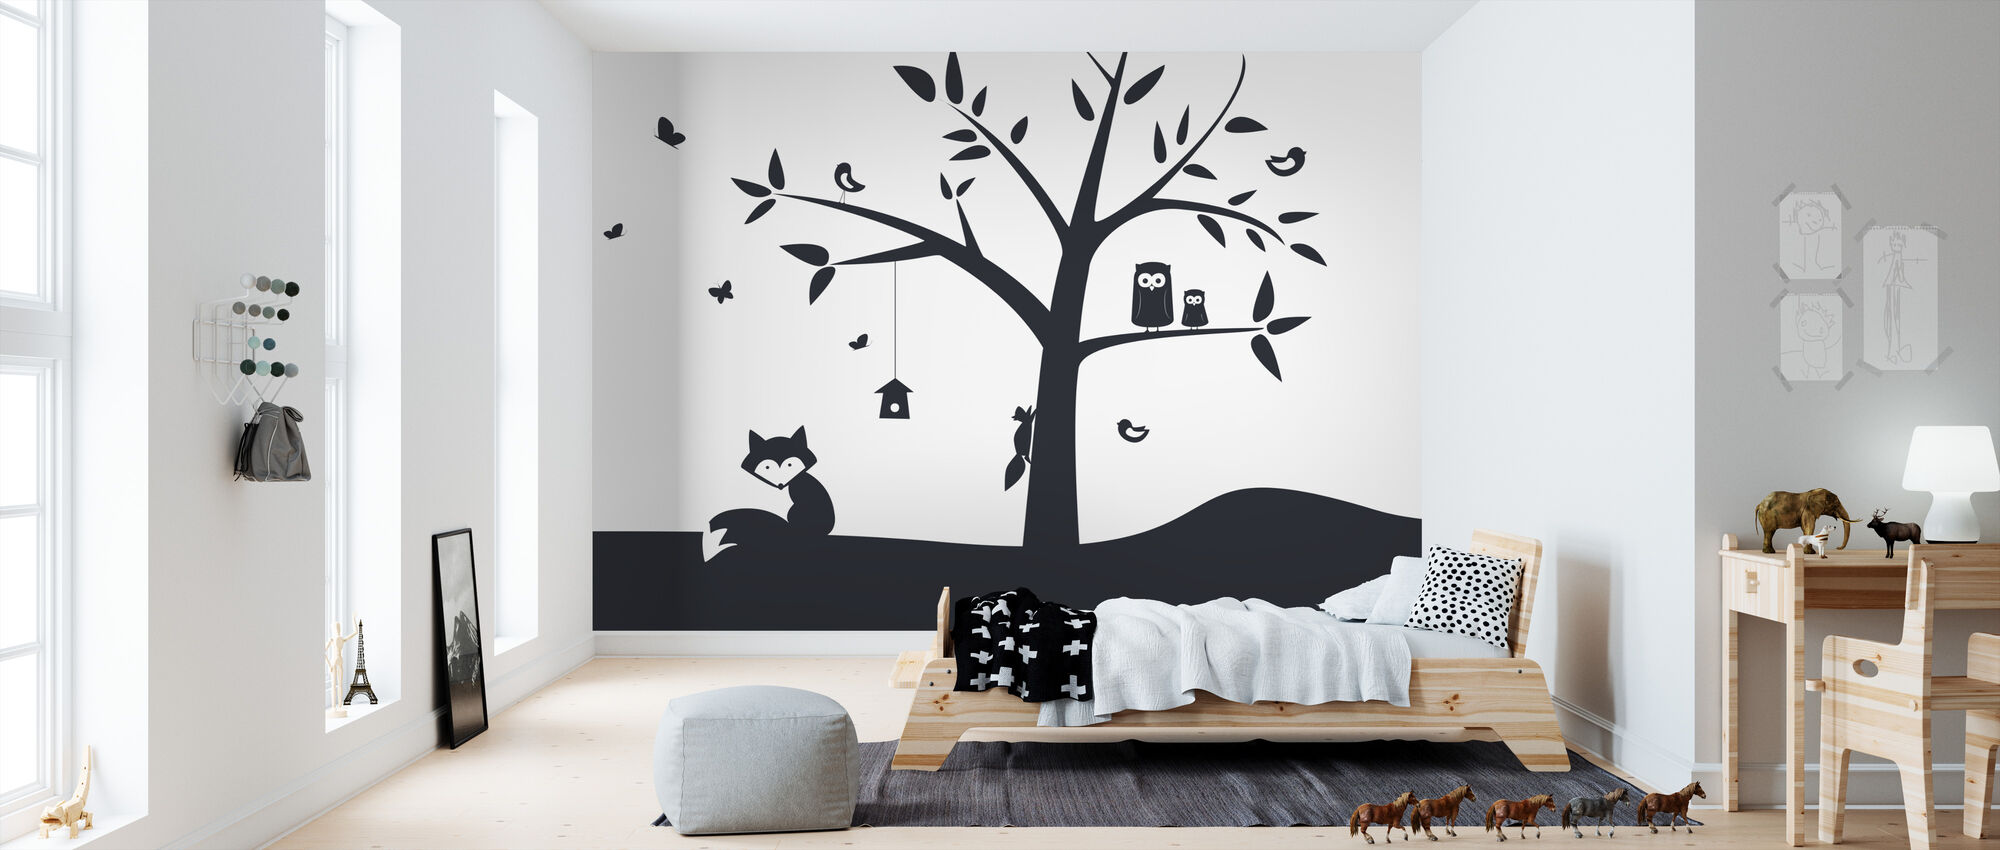 Animal Tree- Black - Wallpaper - Kids Room